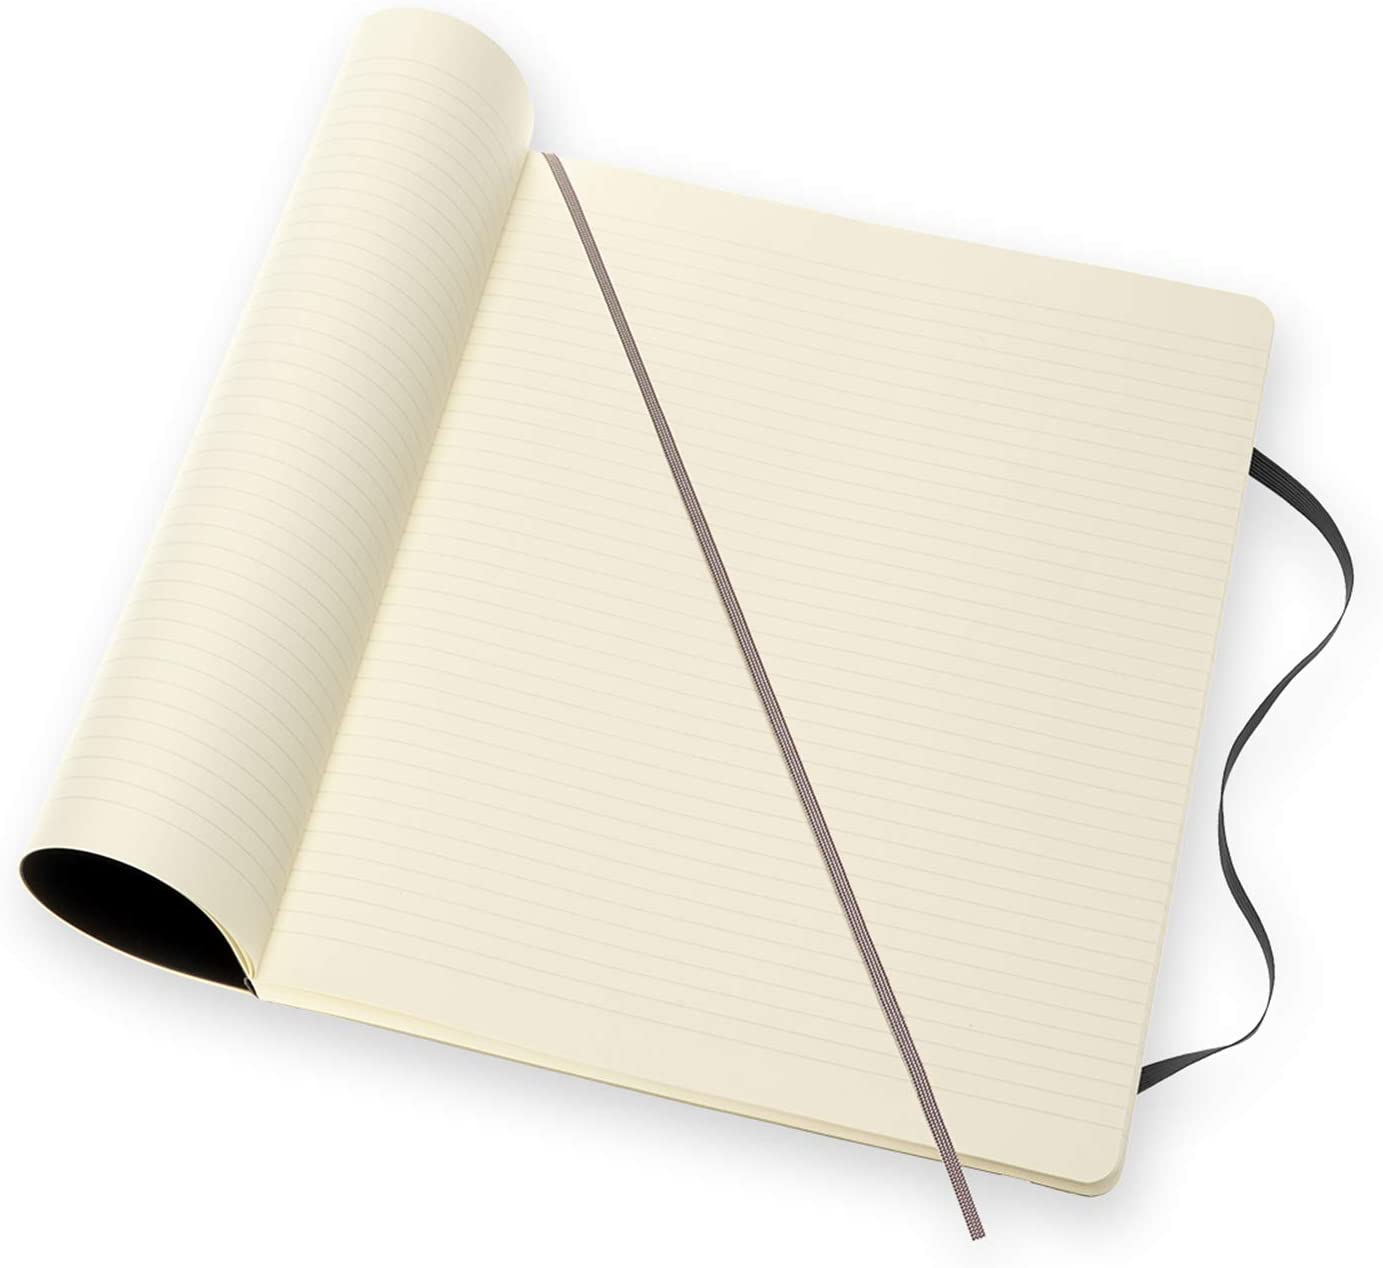 Soft Cover Black 8.5 x 11 192 Pages Moleskine Classic Notebook XXL Ruled//Lined